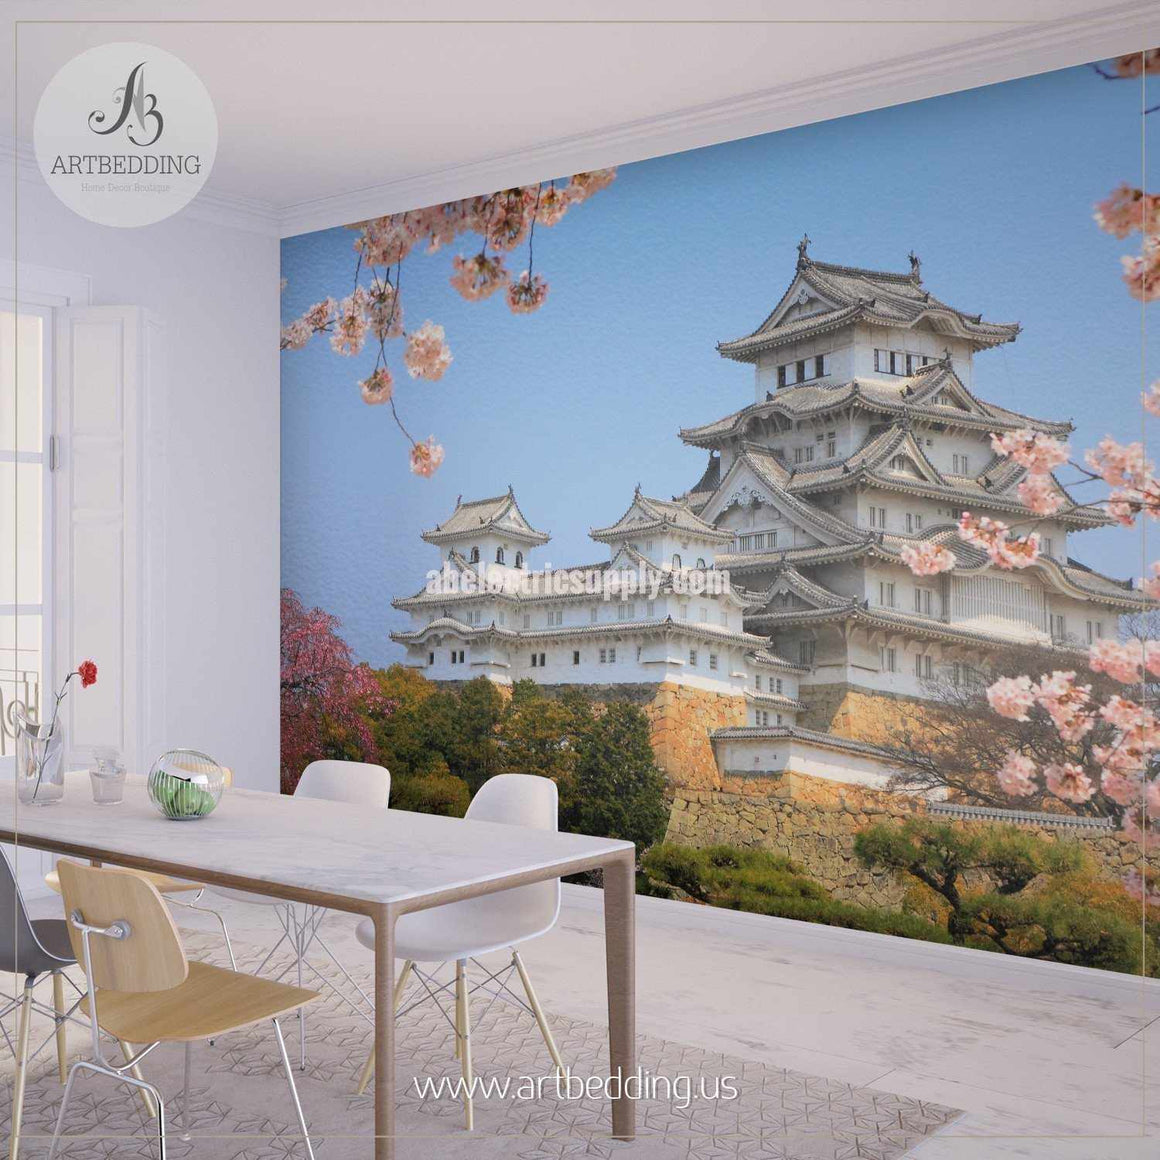 Tower of the UNESCO world heritage site Himeji Castle with Cherry Blossoms Cityscape Wall Mural, Japan Photo sticker, Japan wall decor wall mural